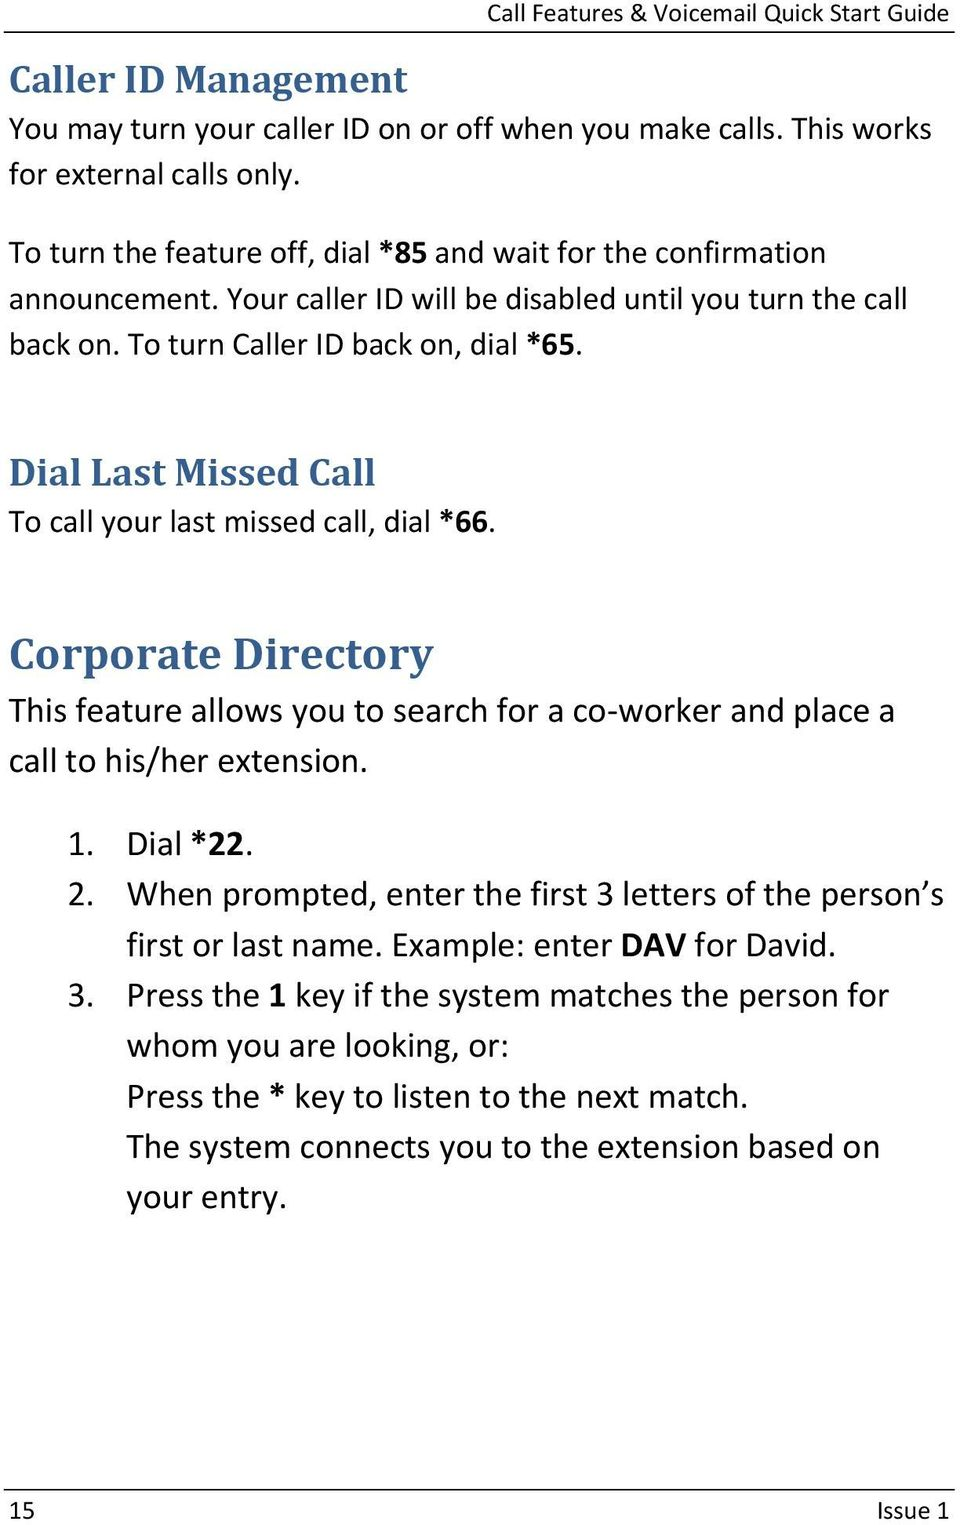 Corporate Directory This feature allows you to search for a co worker and place a call to his/her extension. 1. Dial *22. 2.